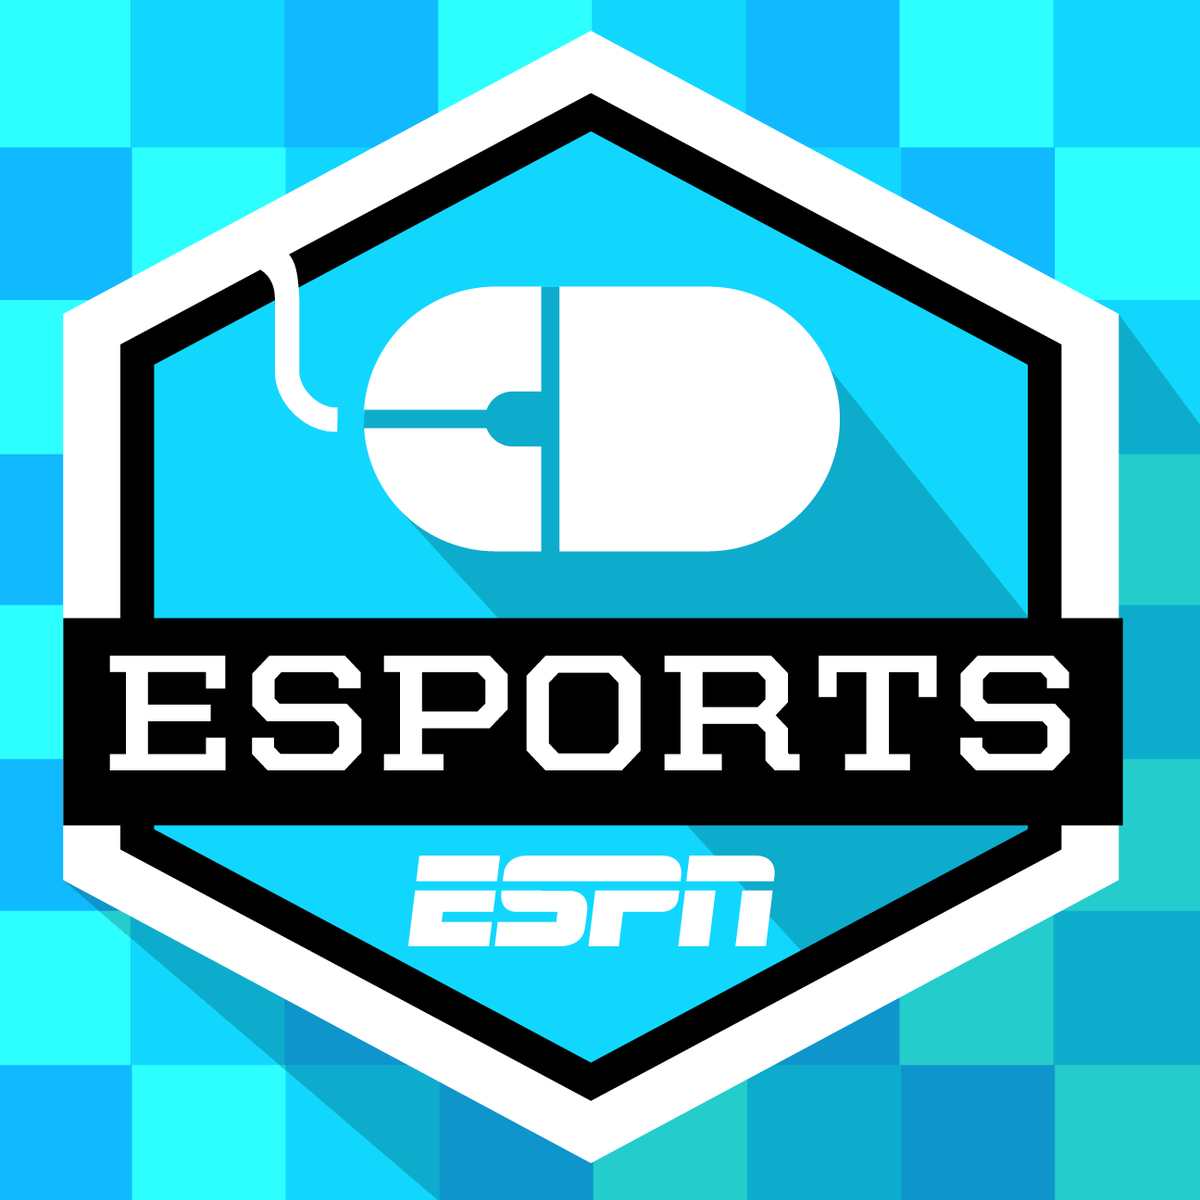 I'm thrilled to announce the launch of the one and only ESPN of esports: ESPN.   Welcome to @ESPN_Esports. https://t.co/j6cNrzxyV6